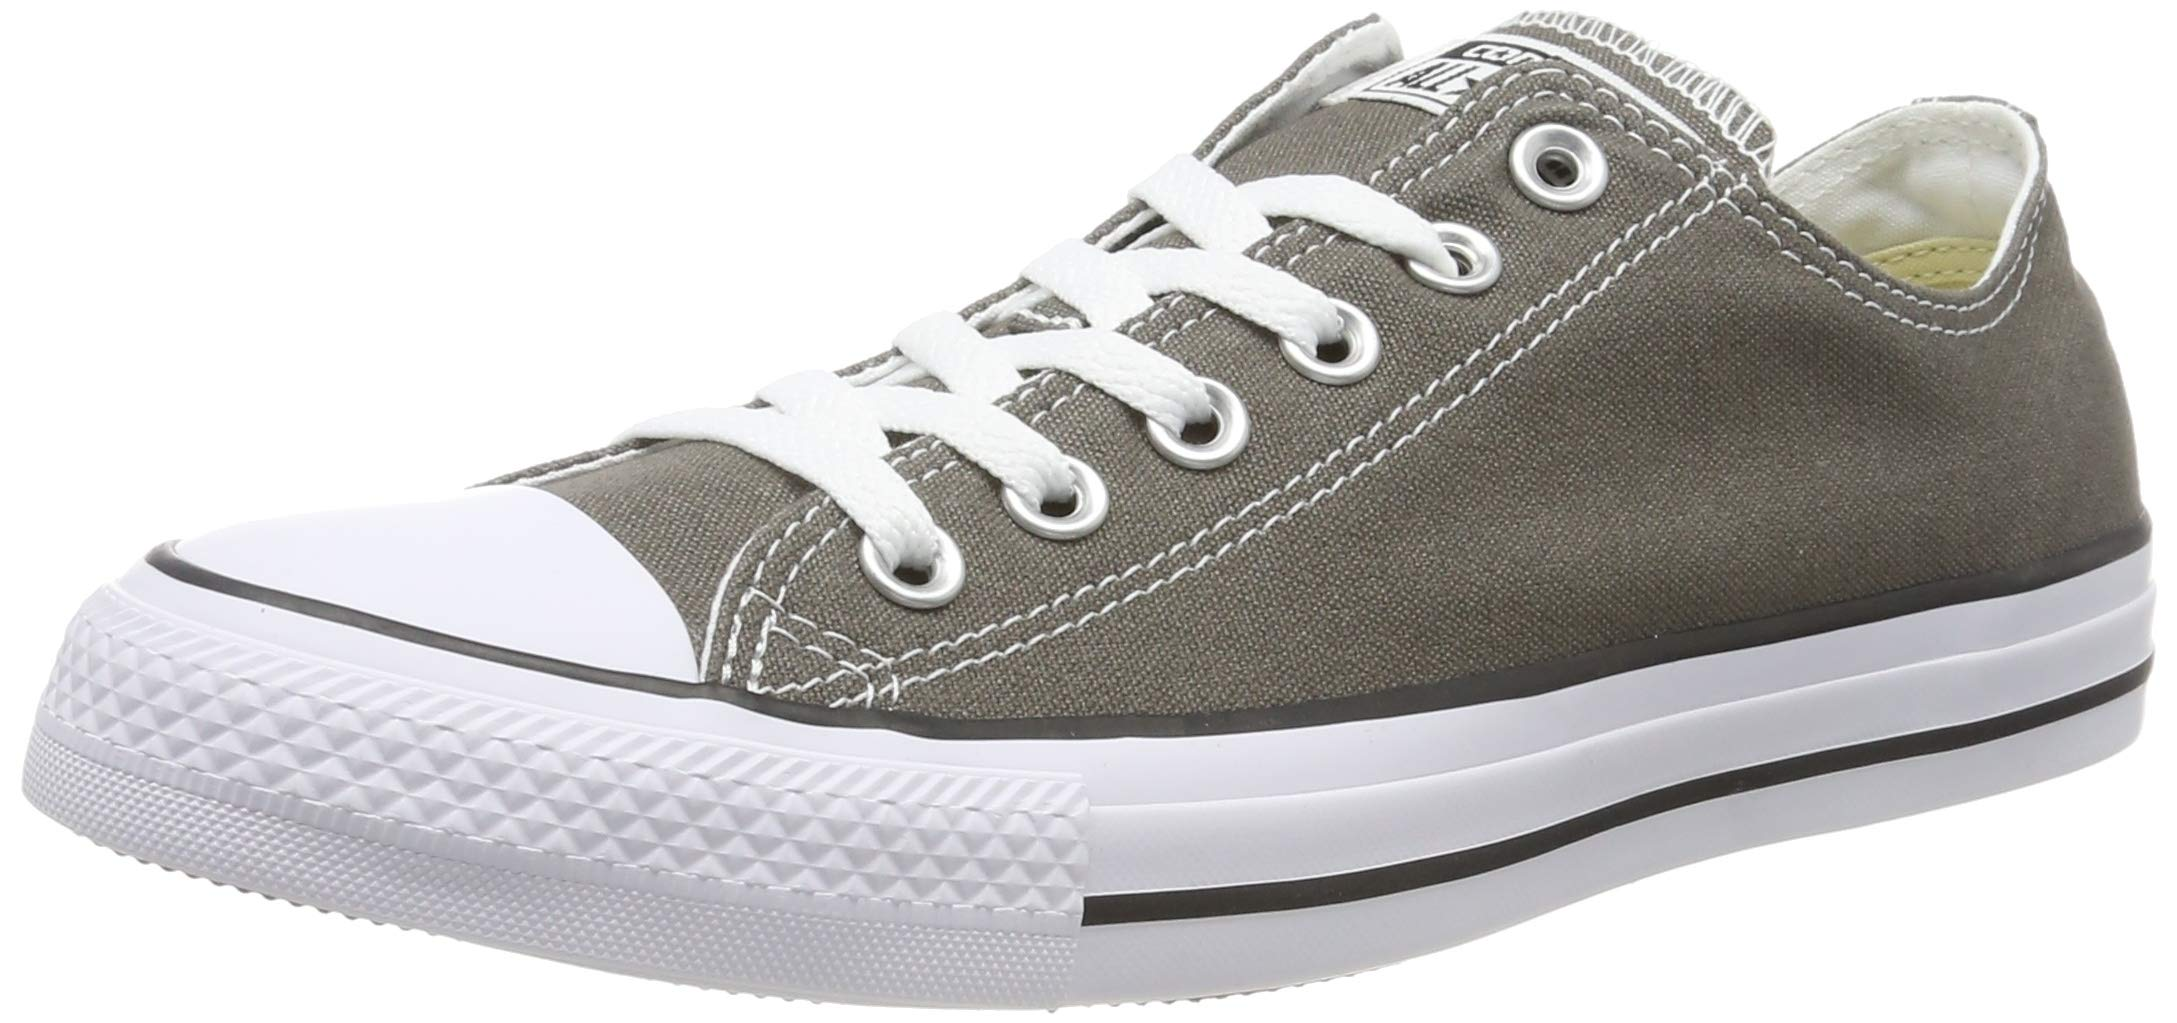 Converse Chuck Taylor Seasonal OX Unisex Shoes Charcoal 1j794 (11 D(M) US)